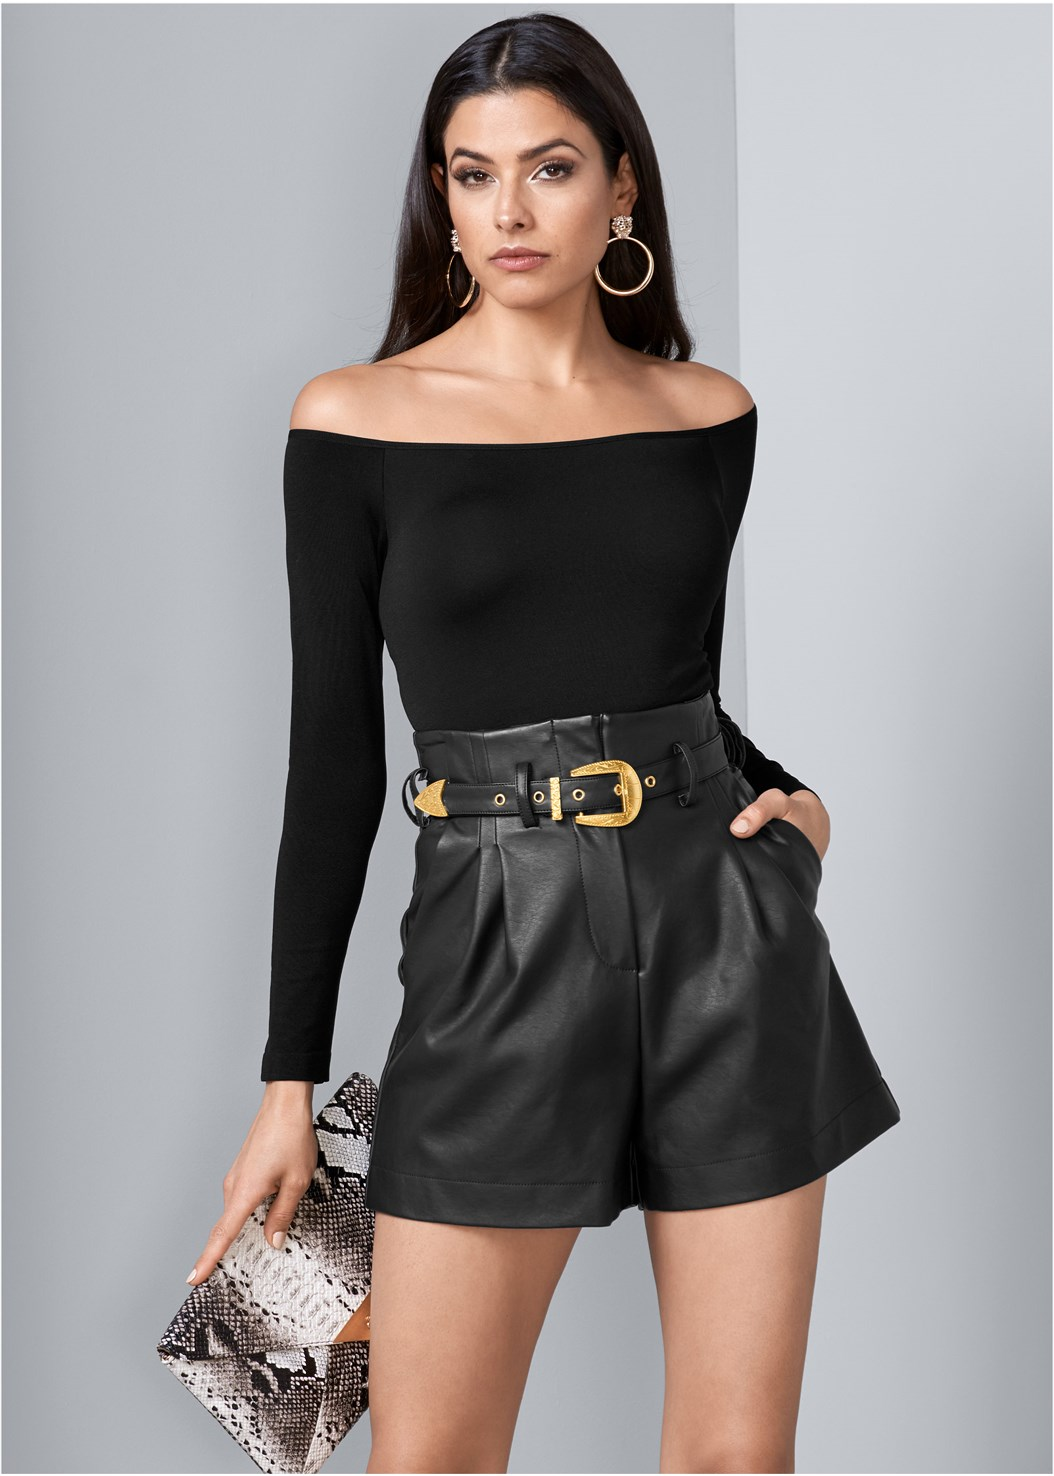 Belted Faux Leather Shorts,Off The Shoulder Top,Python Clutch,Steve Madden B Corina